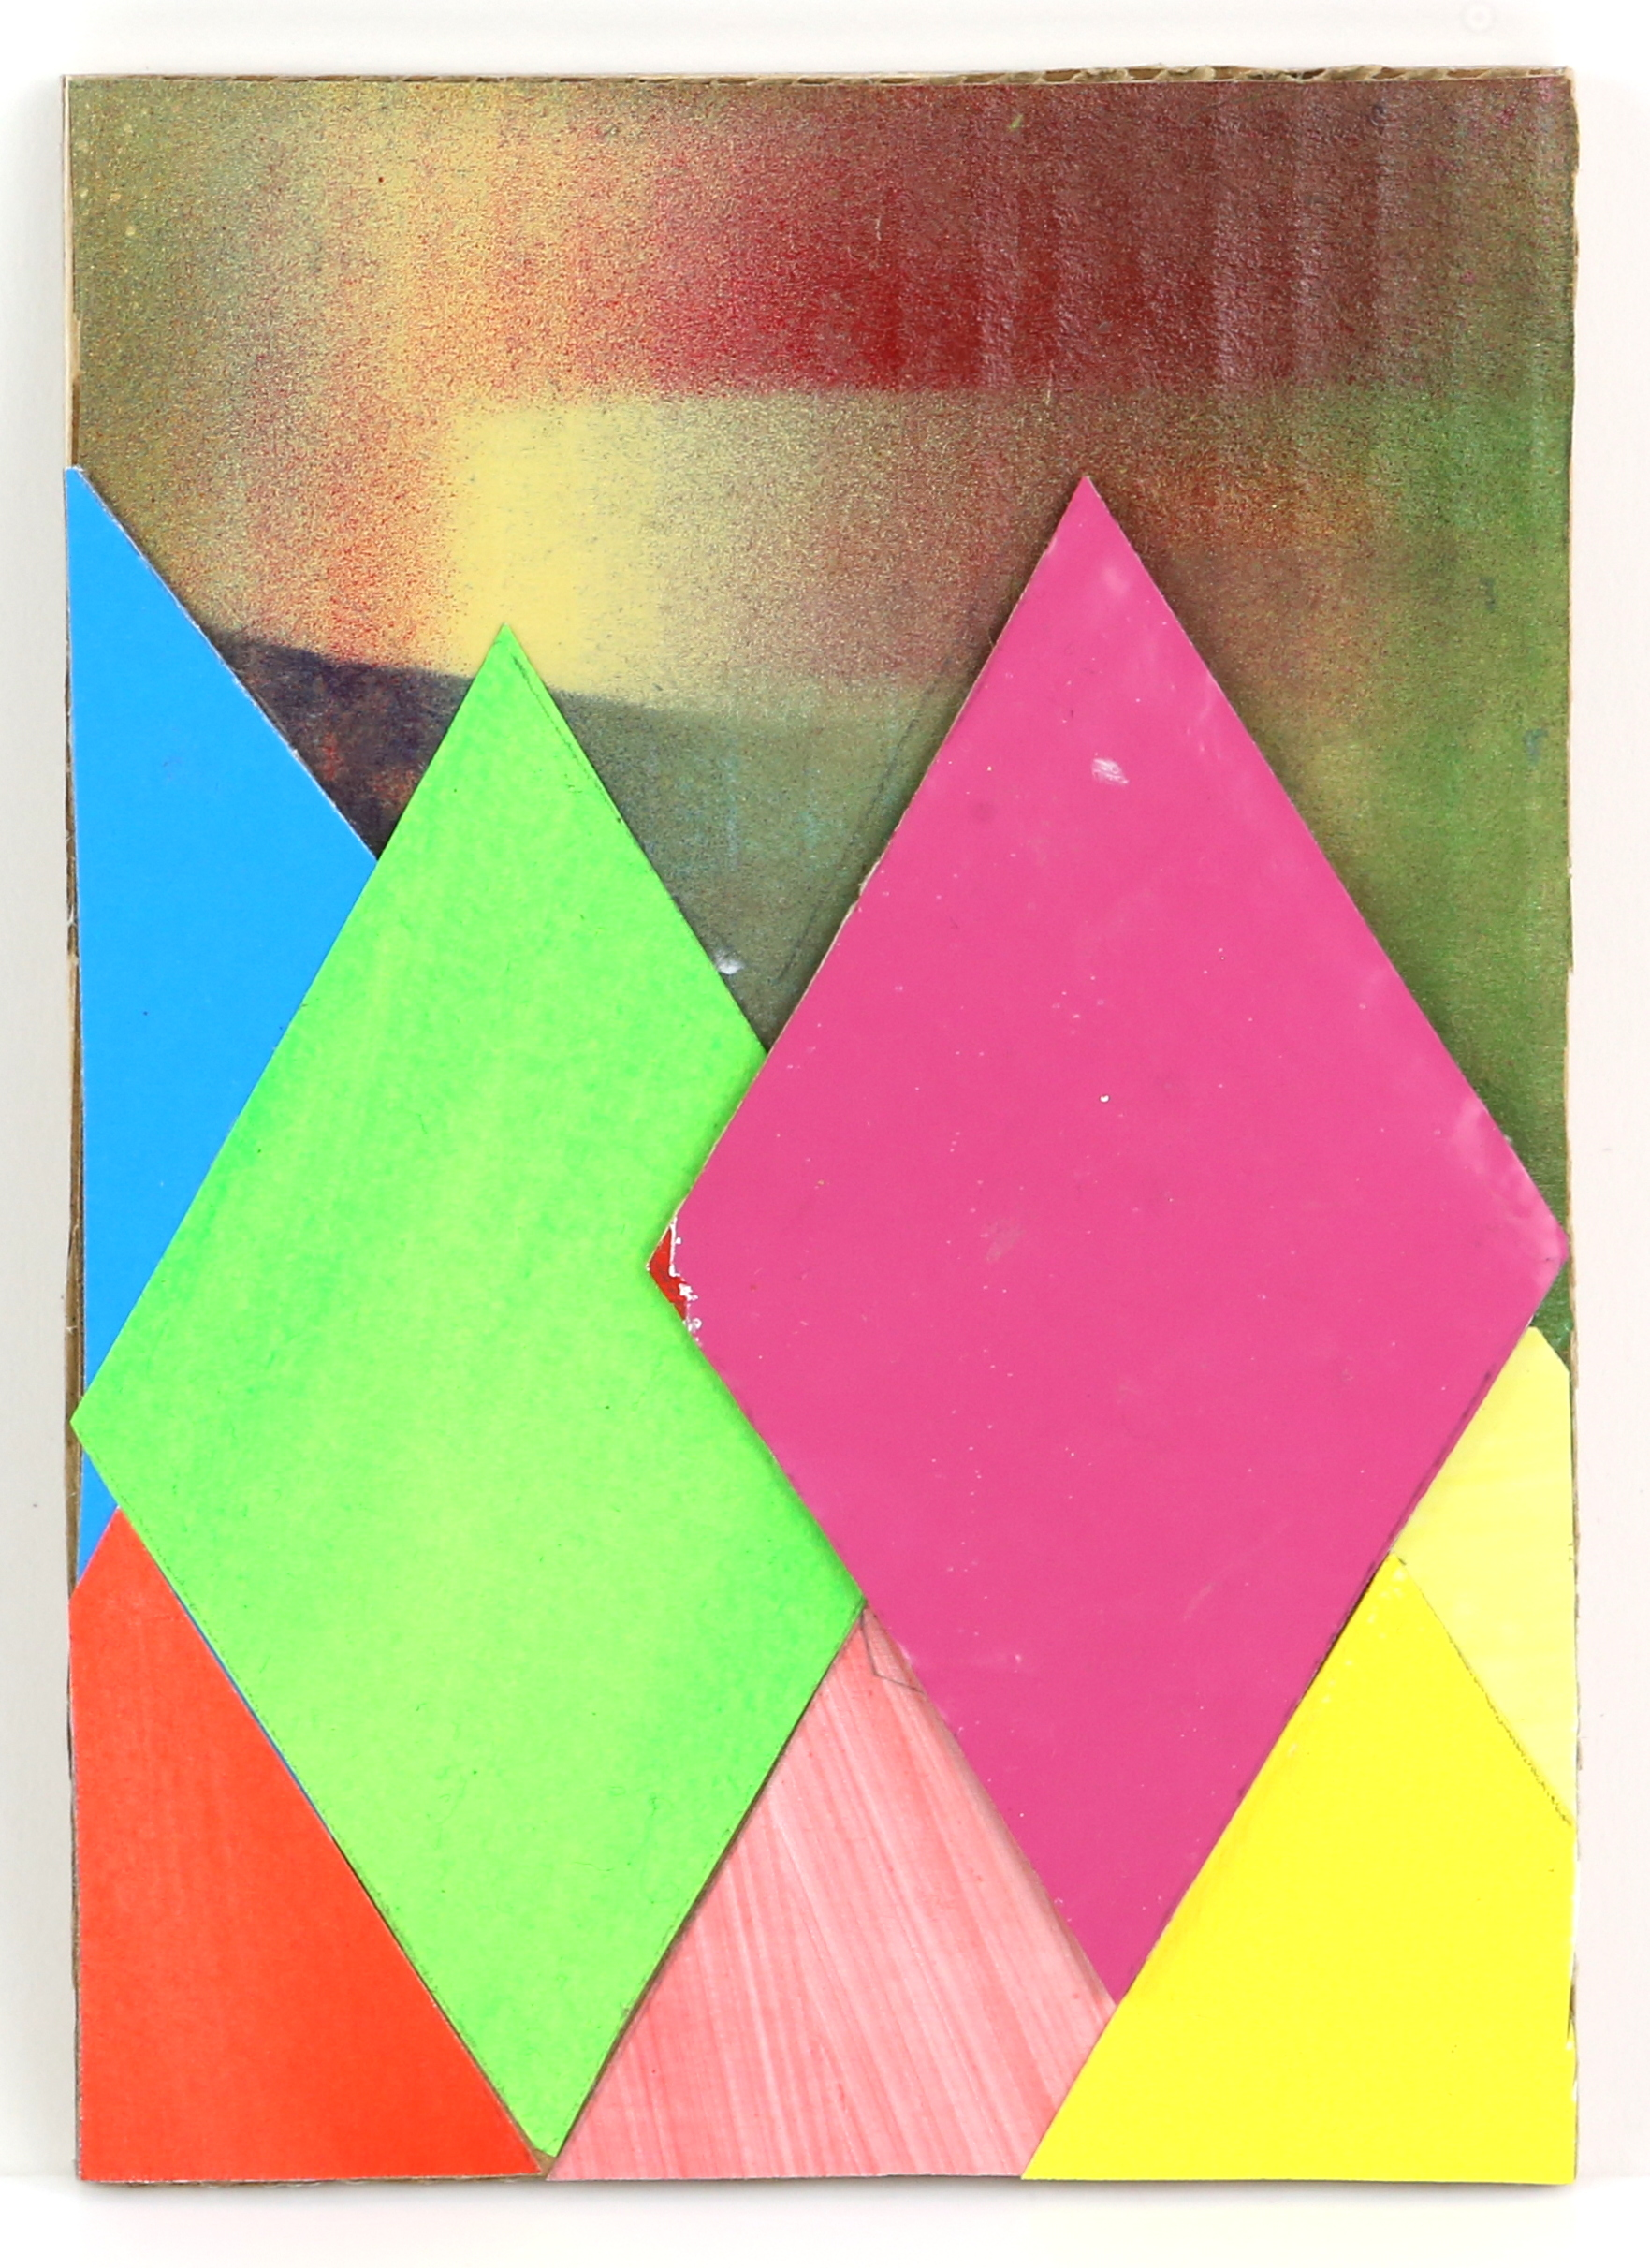 Christine Stark (British). '7 of Diamonds'. Mixed media on board. Signed, titled and dated 2020